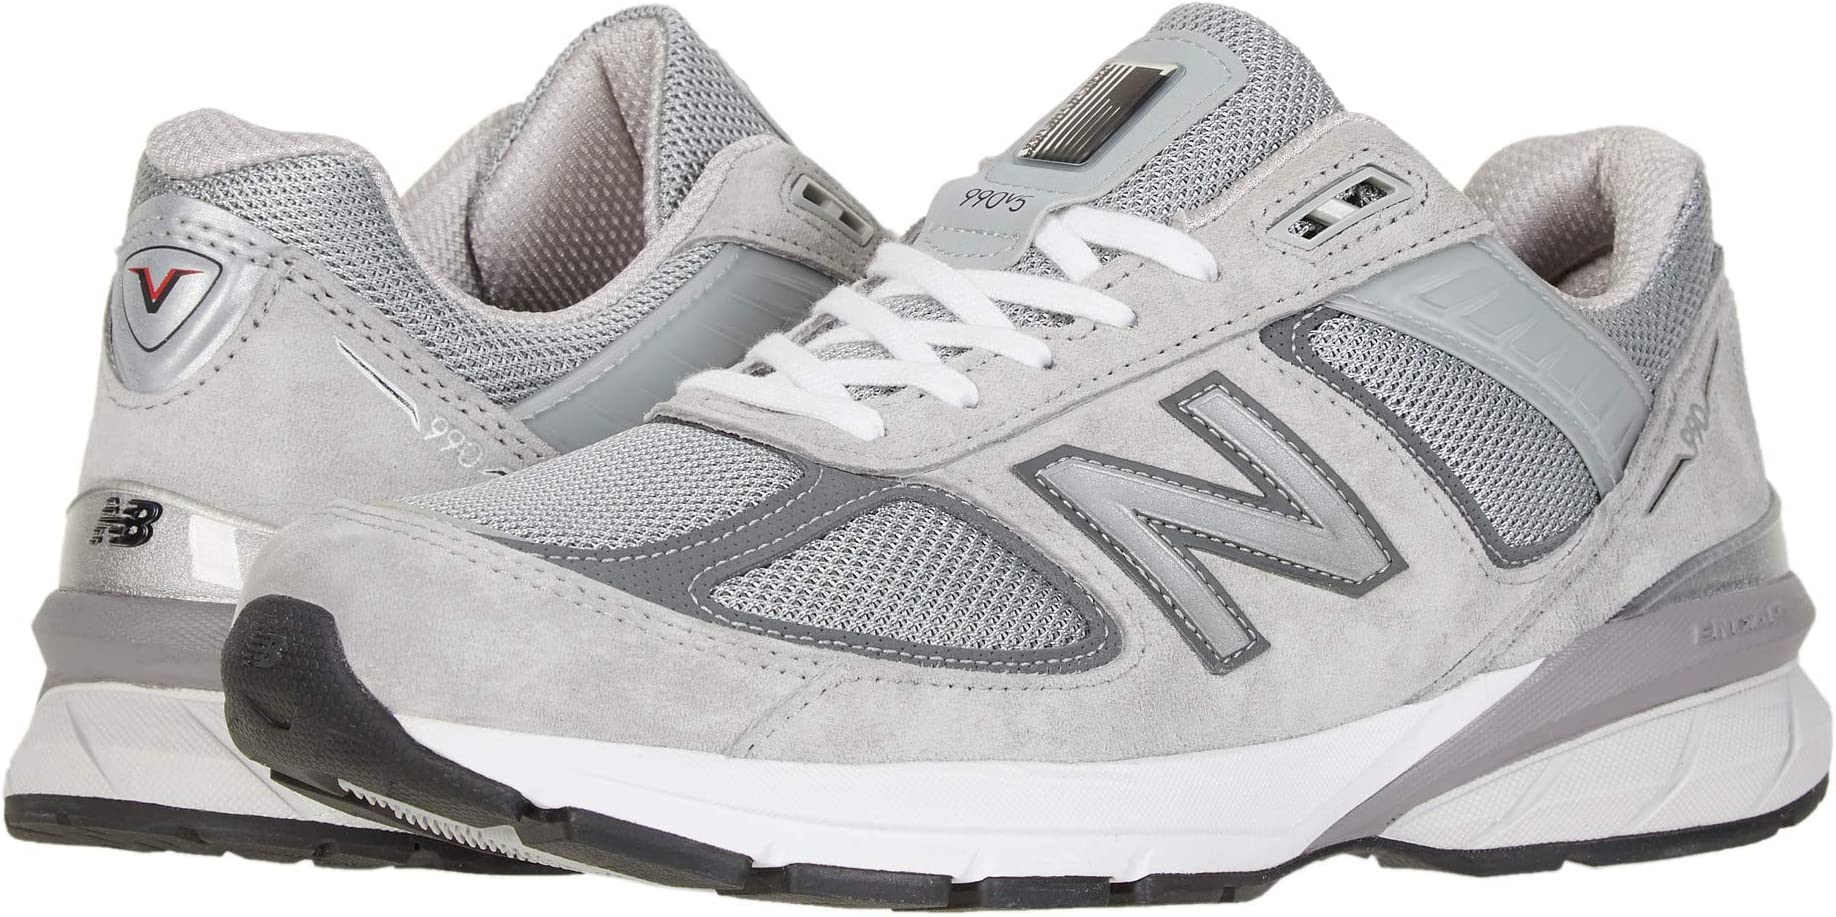 f774261812f8 Shop New Balance · Women s Shoes · Women s Clothing · Men s Shoes